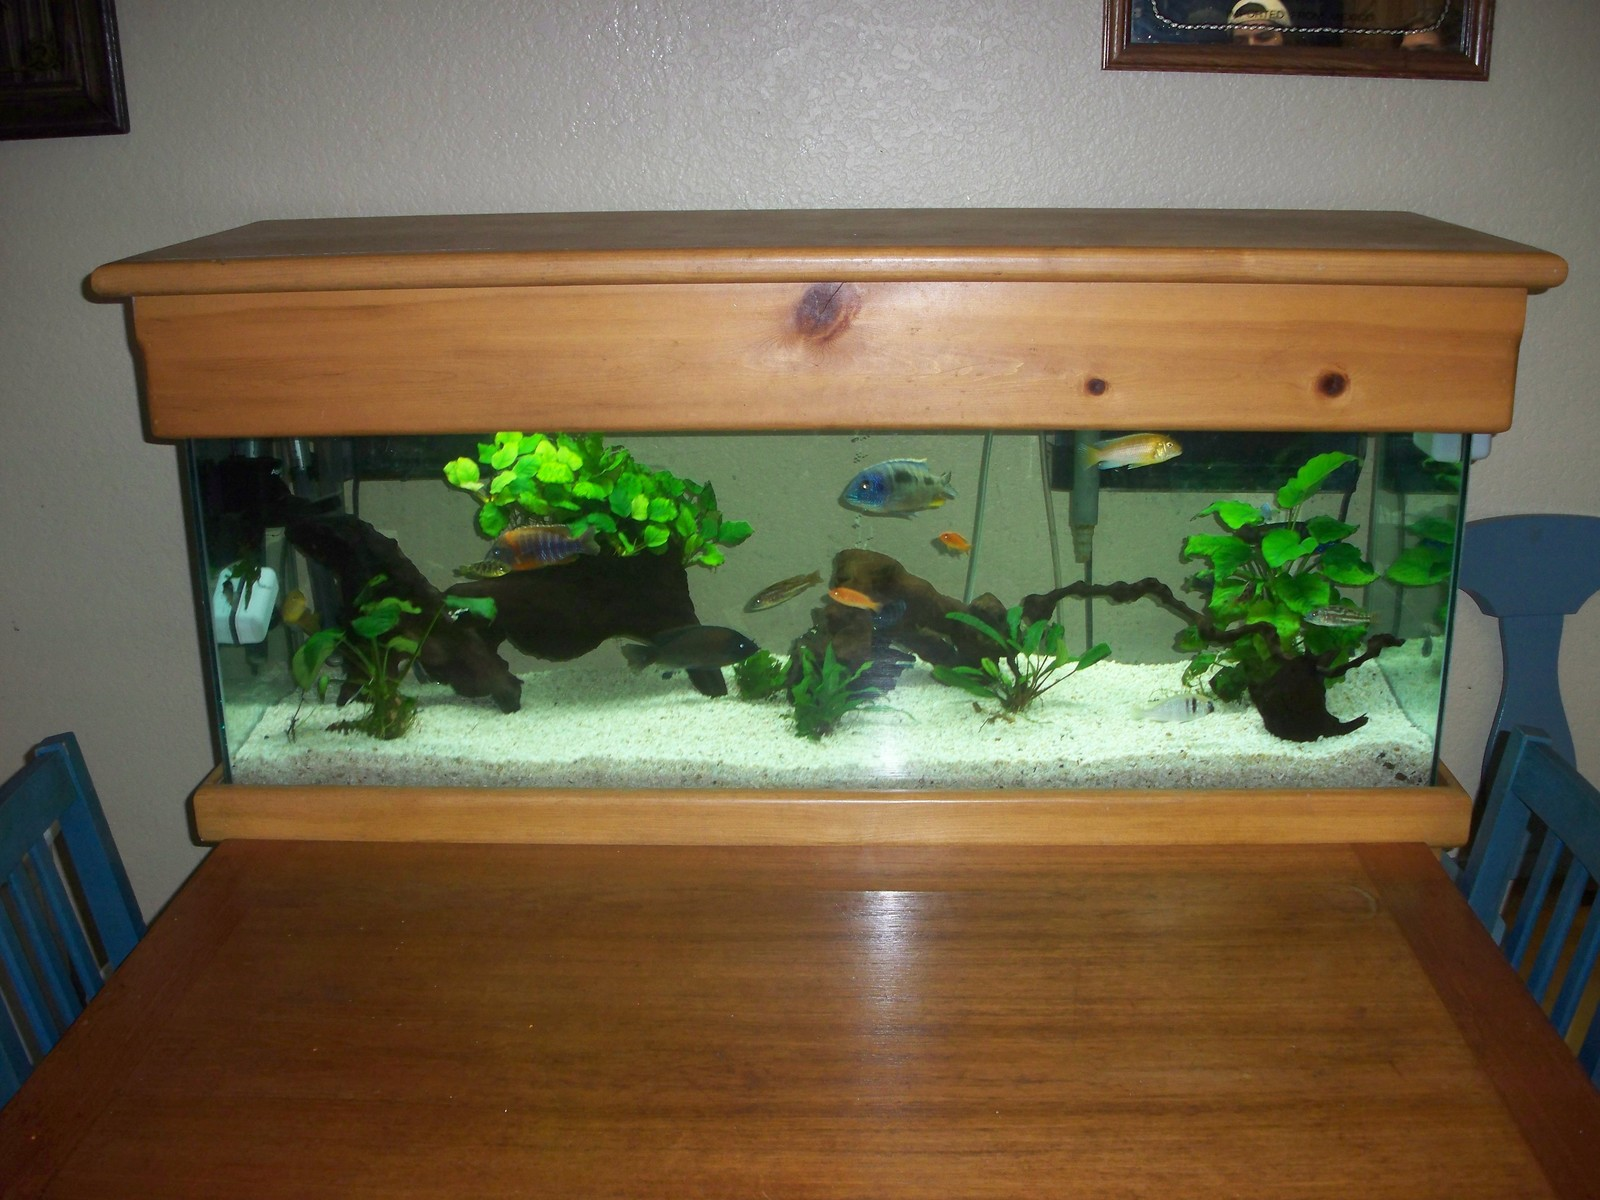 60 gallon Malawi tank | by todd johnson